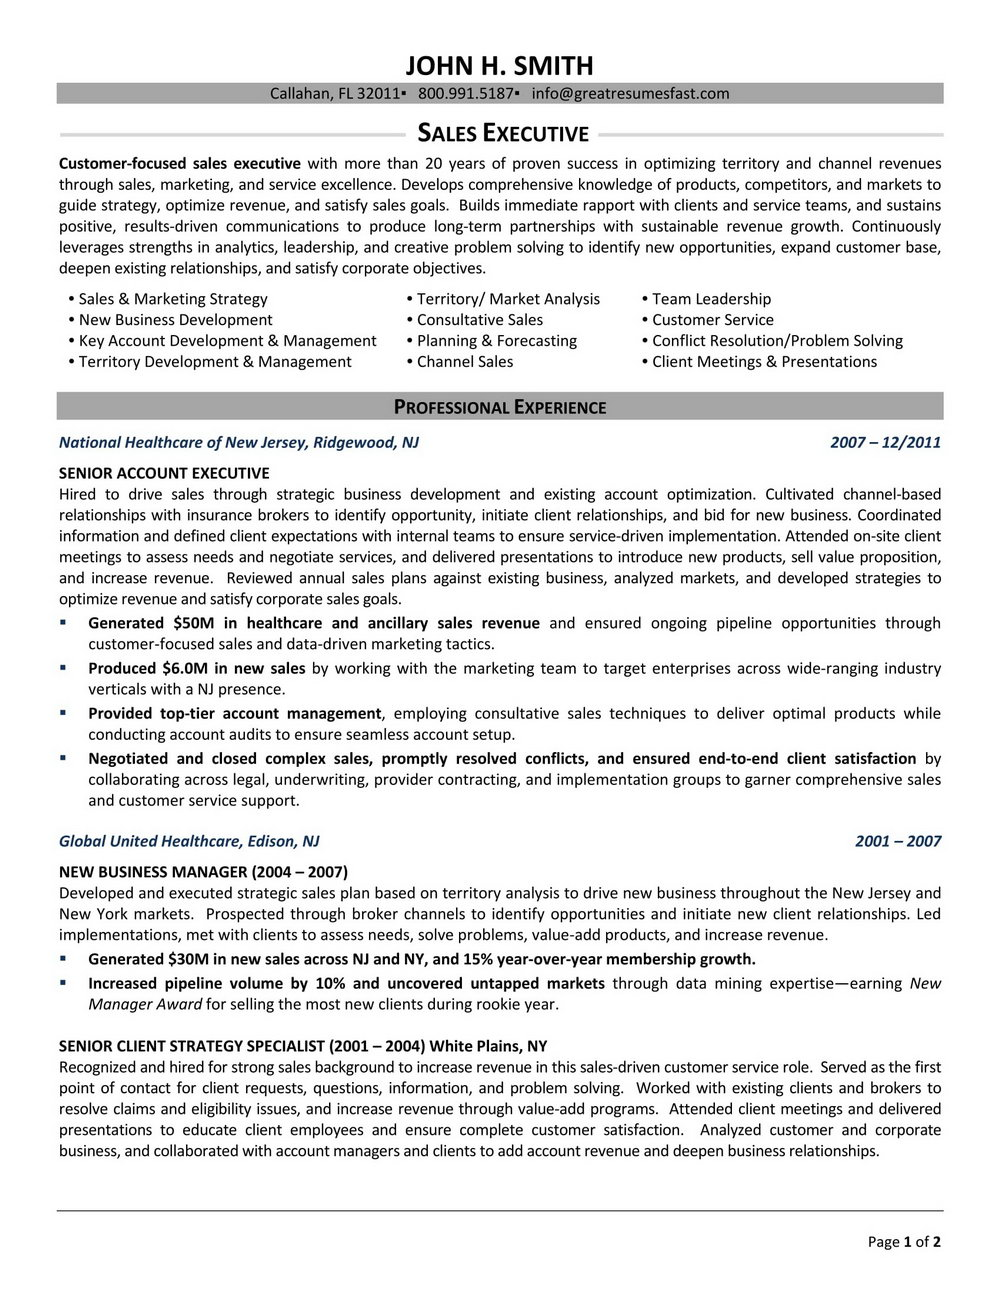 Resume Examples For Sales Executives